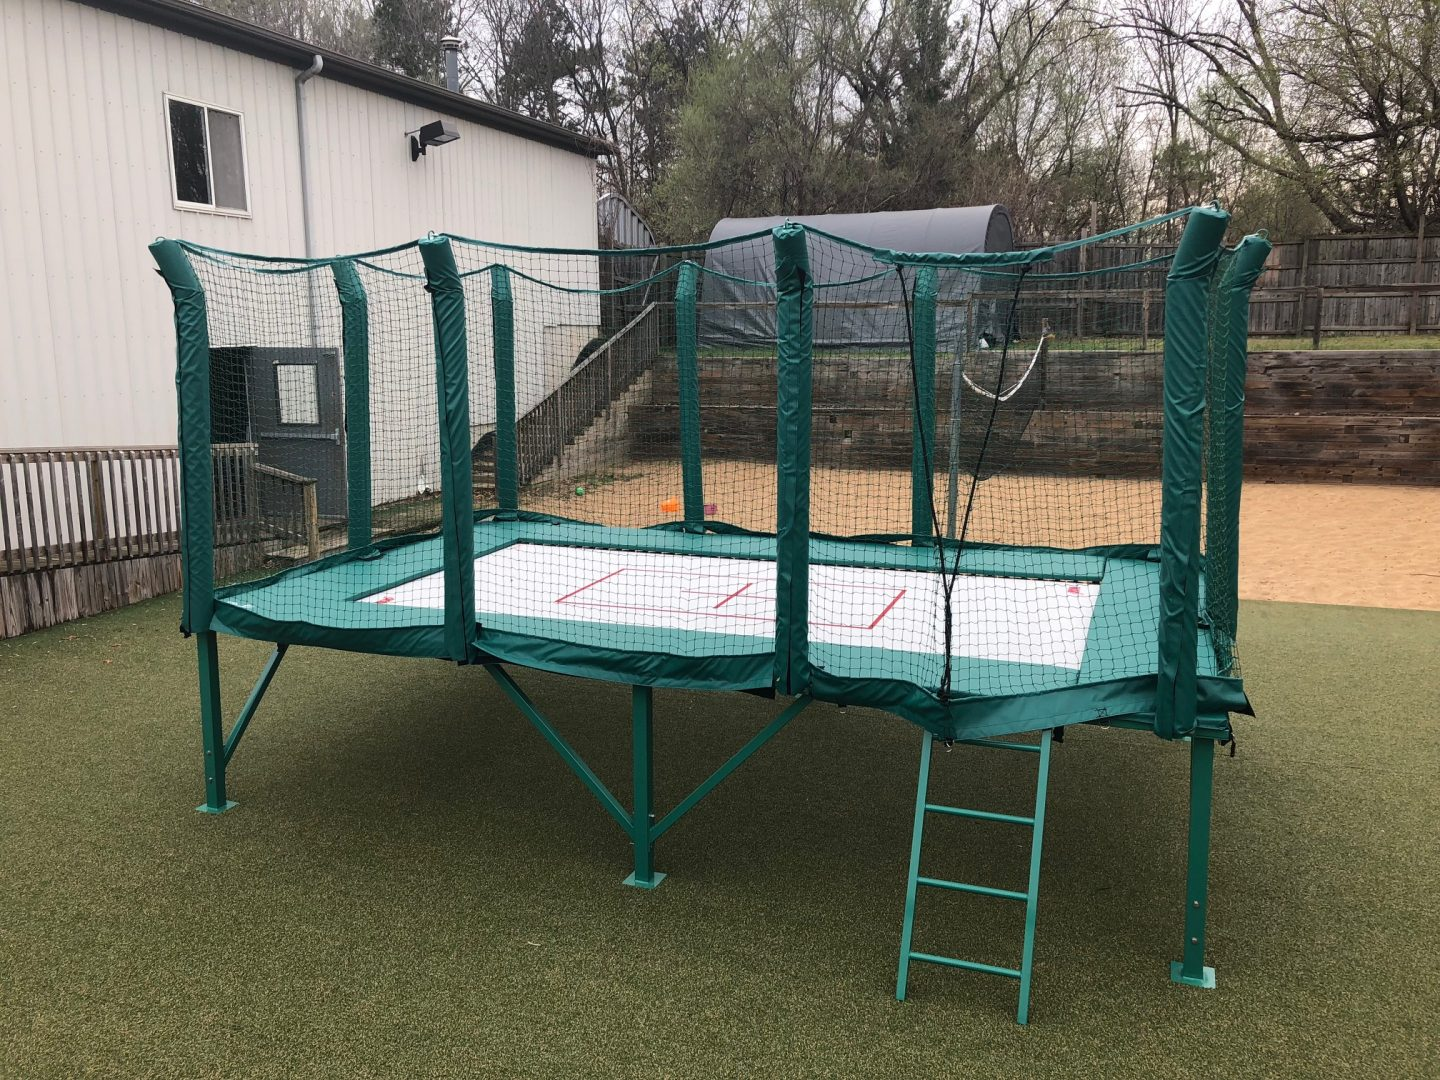 Trampolines For Sale | Find The Best Trampoline And Select